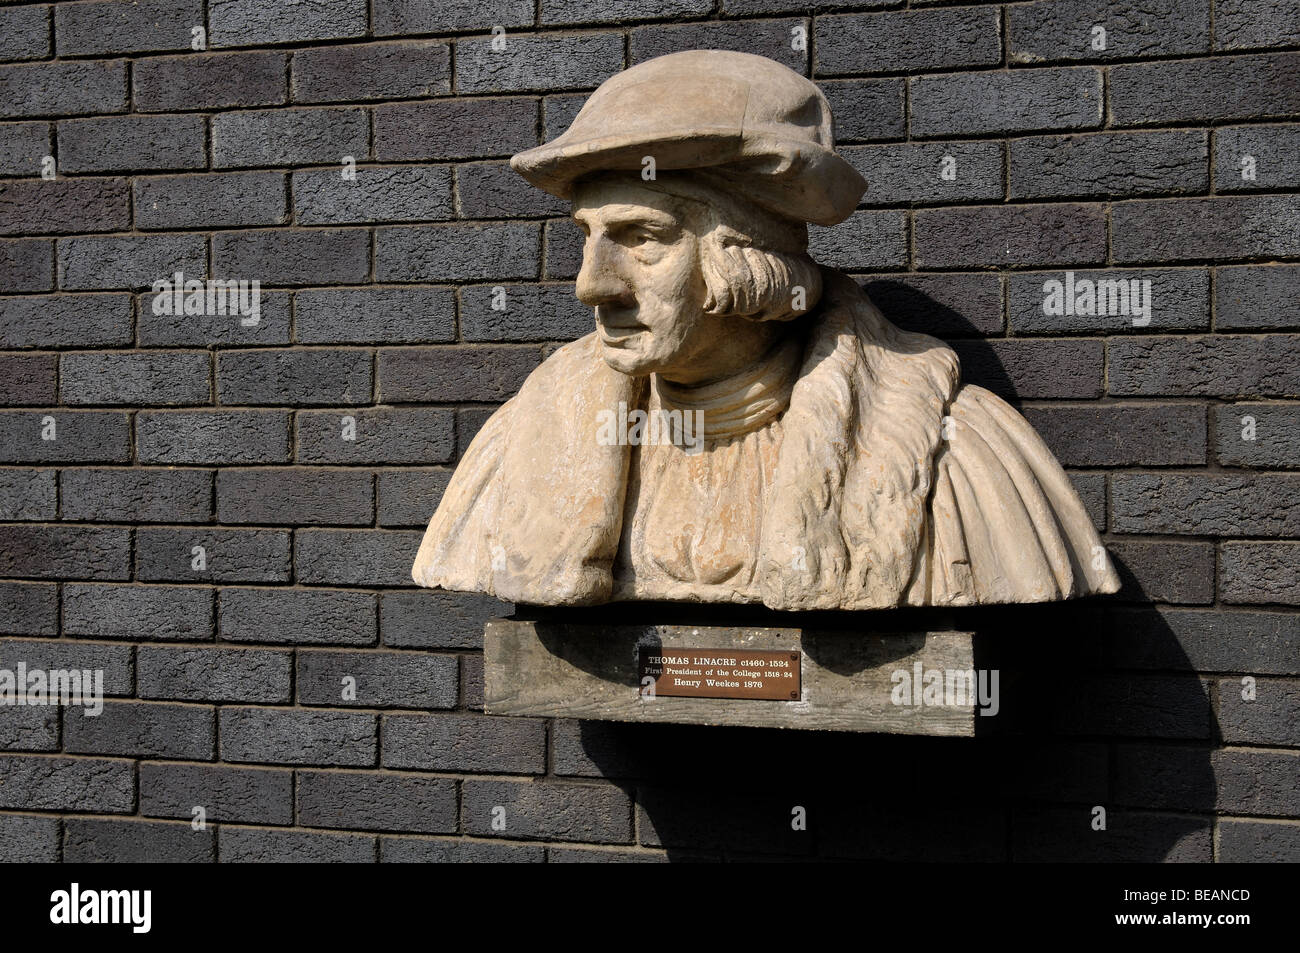 Thomas Linacre bust, St. Andrew s Place Medical Precinct, Royal College of Physicians, London England UK - Stock Image